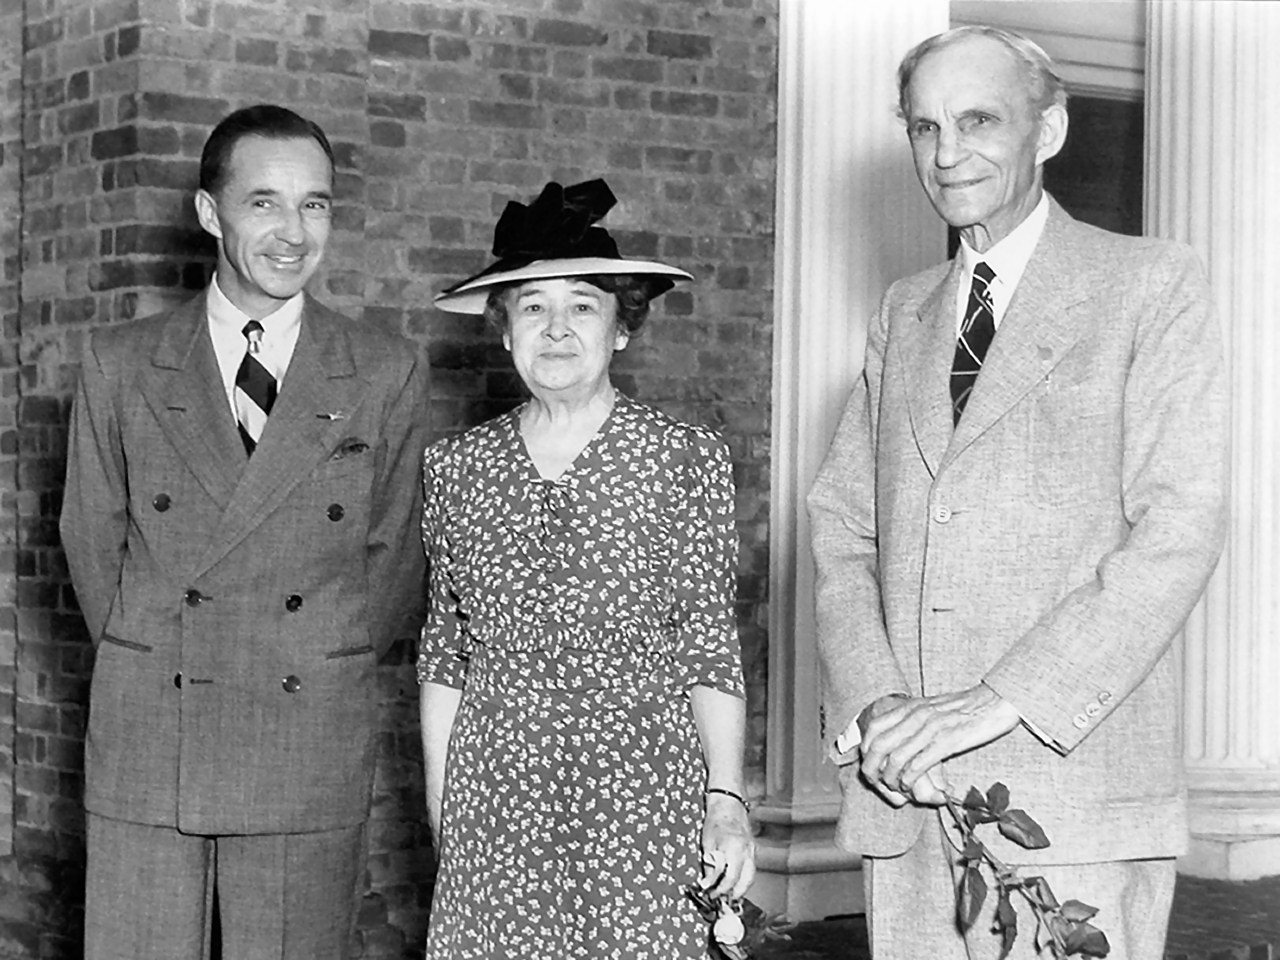 Henry Ford at the Edision Institute dedication in 1929